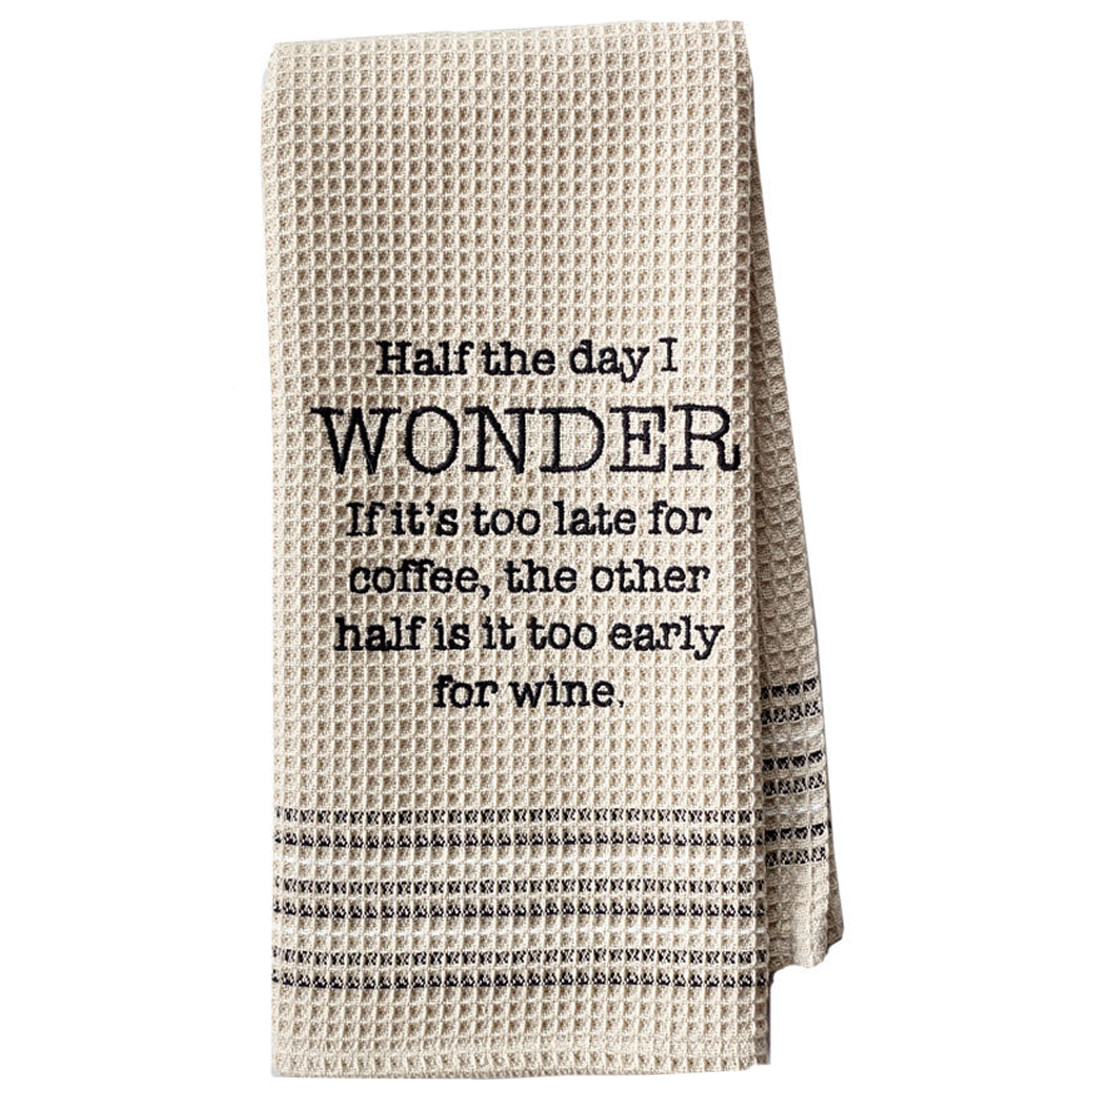 Funny Novelty Cotton Kitchen Dishtowel I Wonder If It's Too Early For Wine